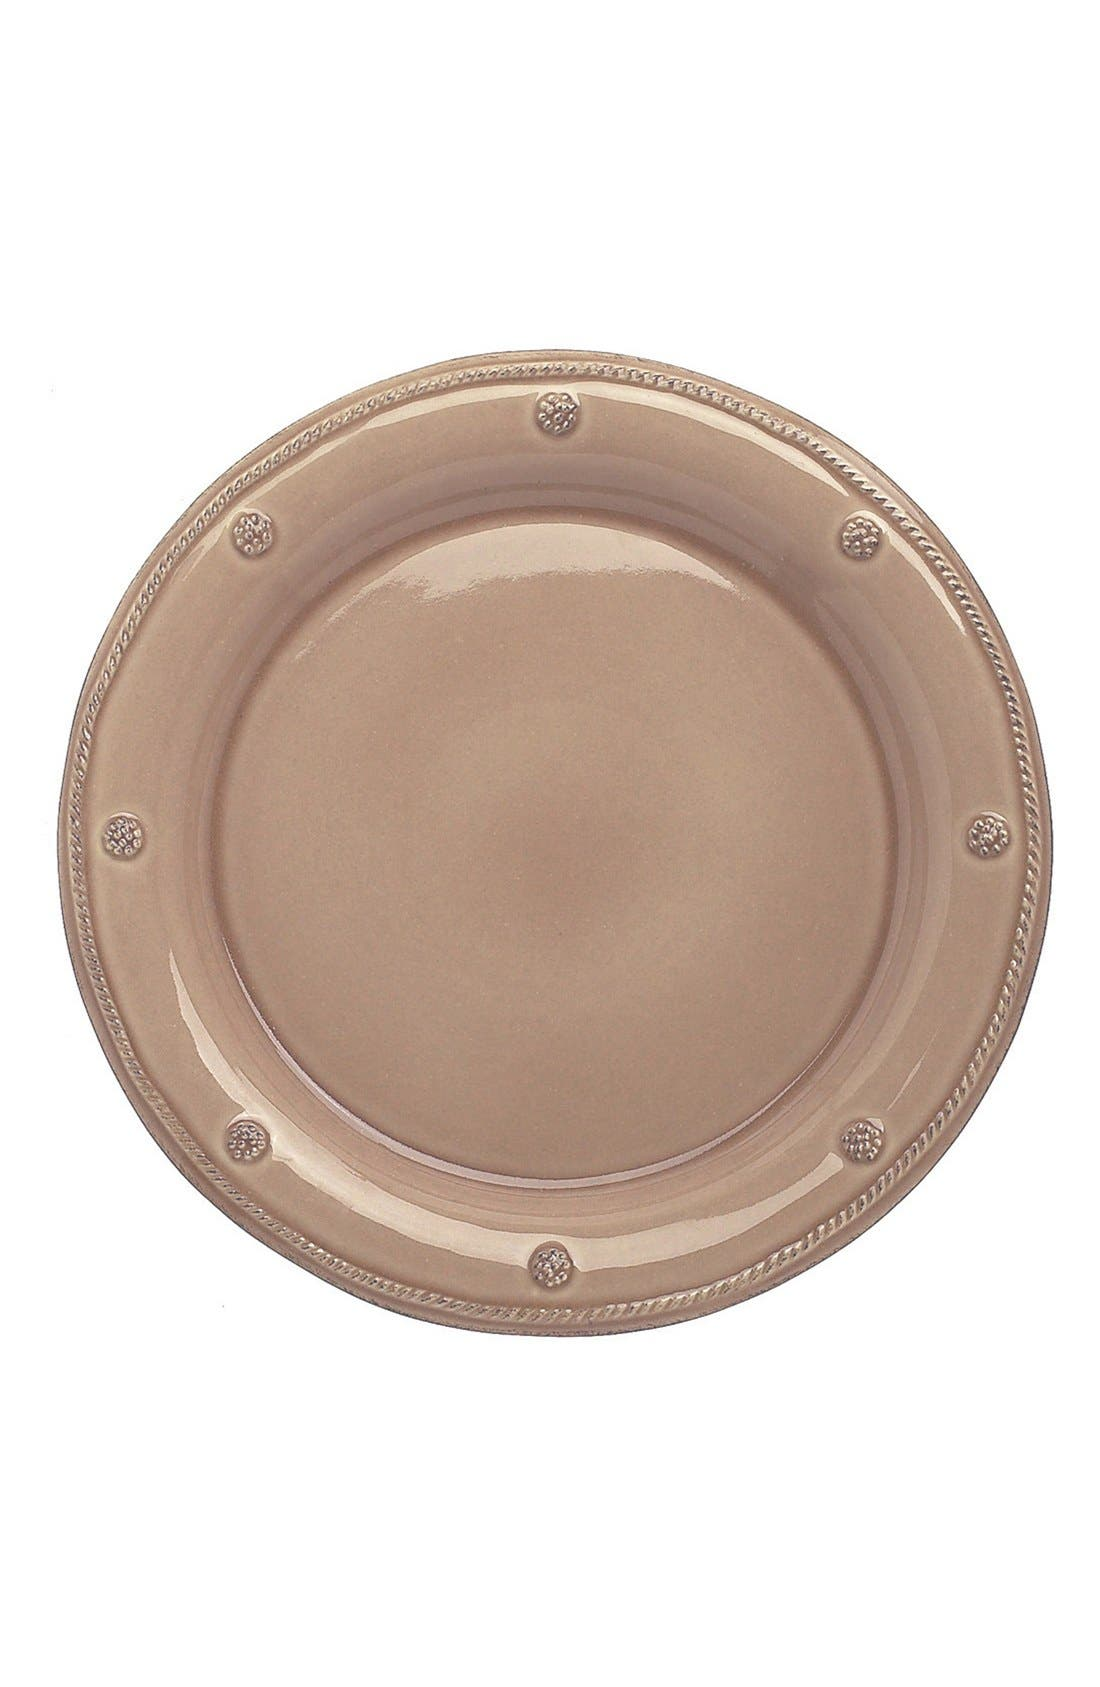 'Berry and Thread' Dinner Plate,                         Main,                         color, Cappuccino Brown